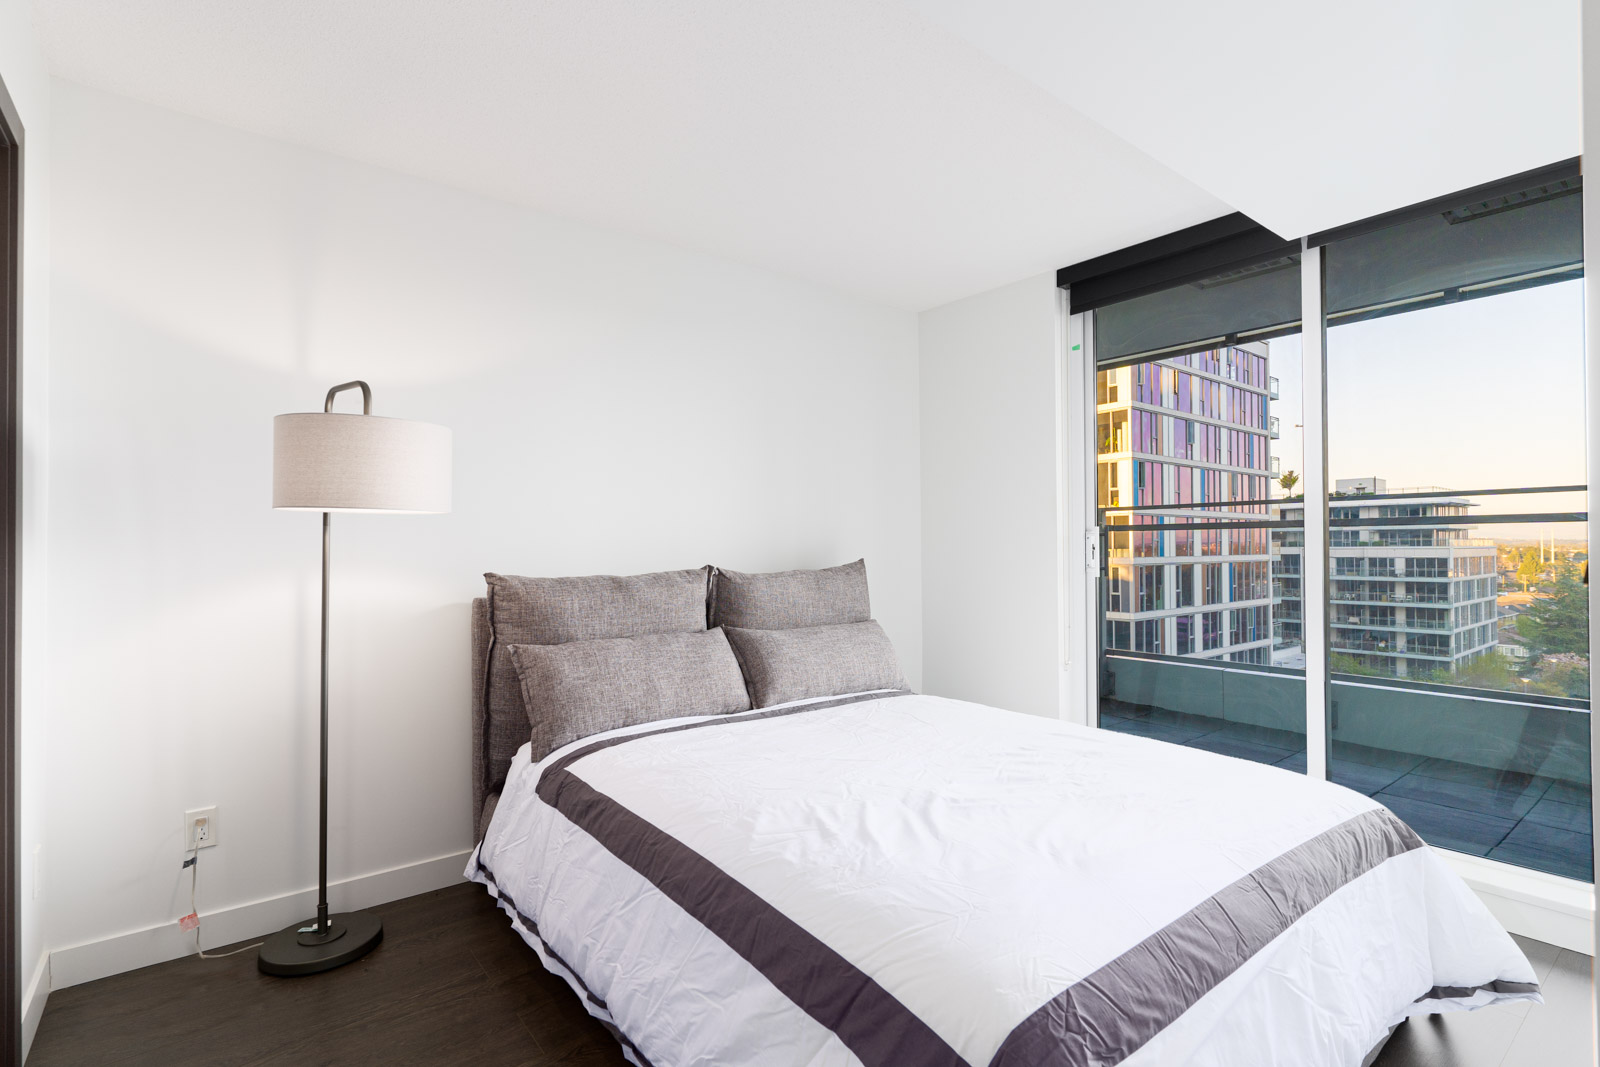 bedroom with bed, lamp and window rented in a condo in richmond